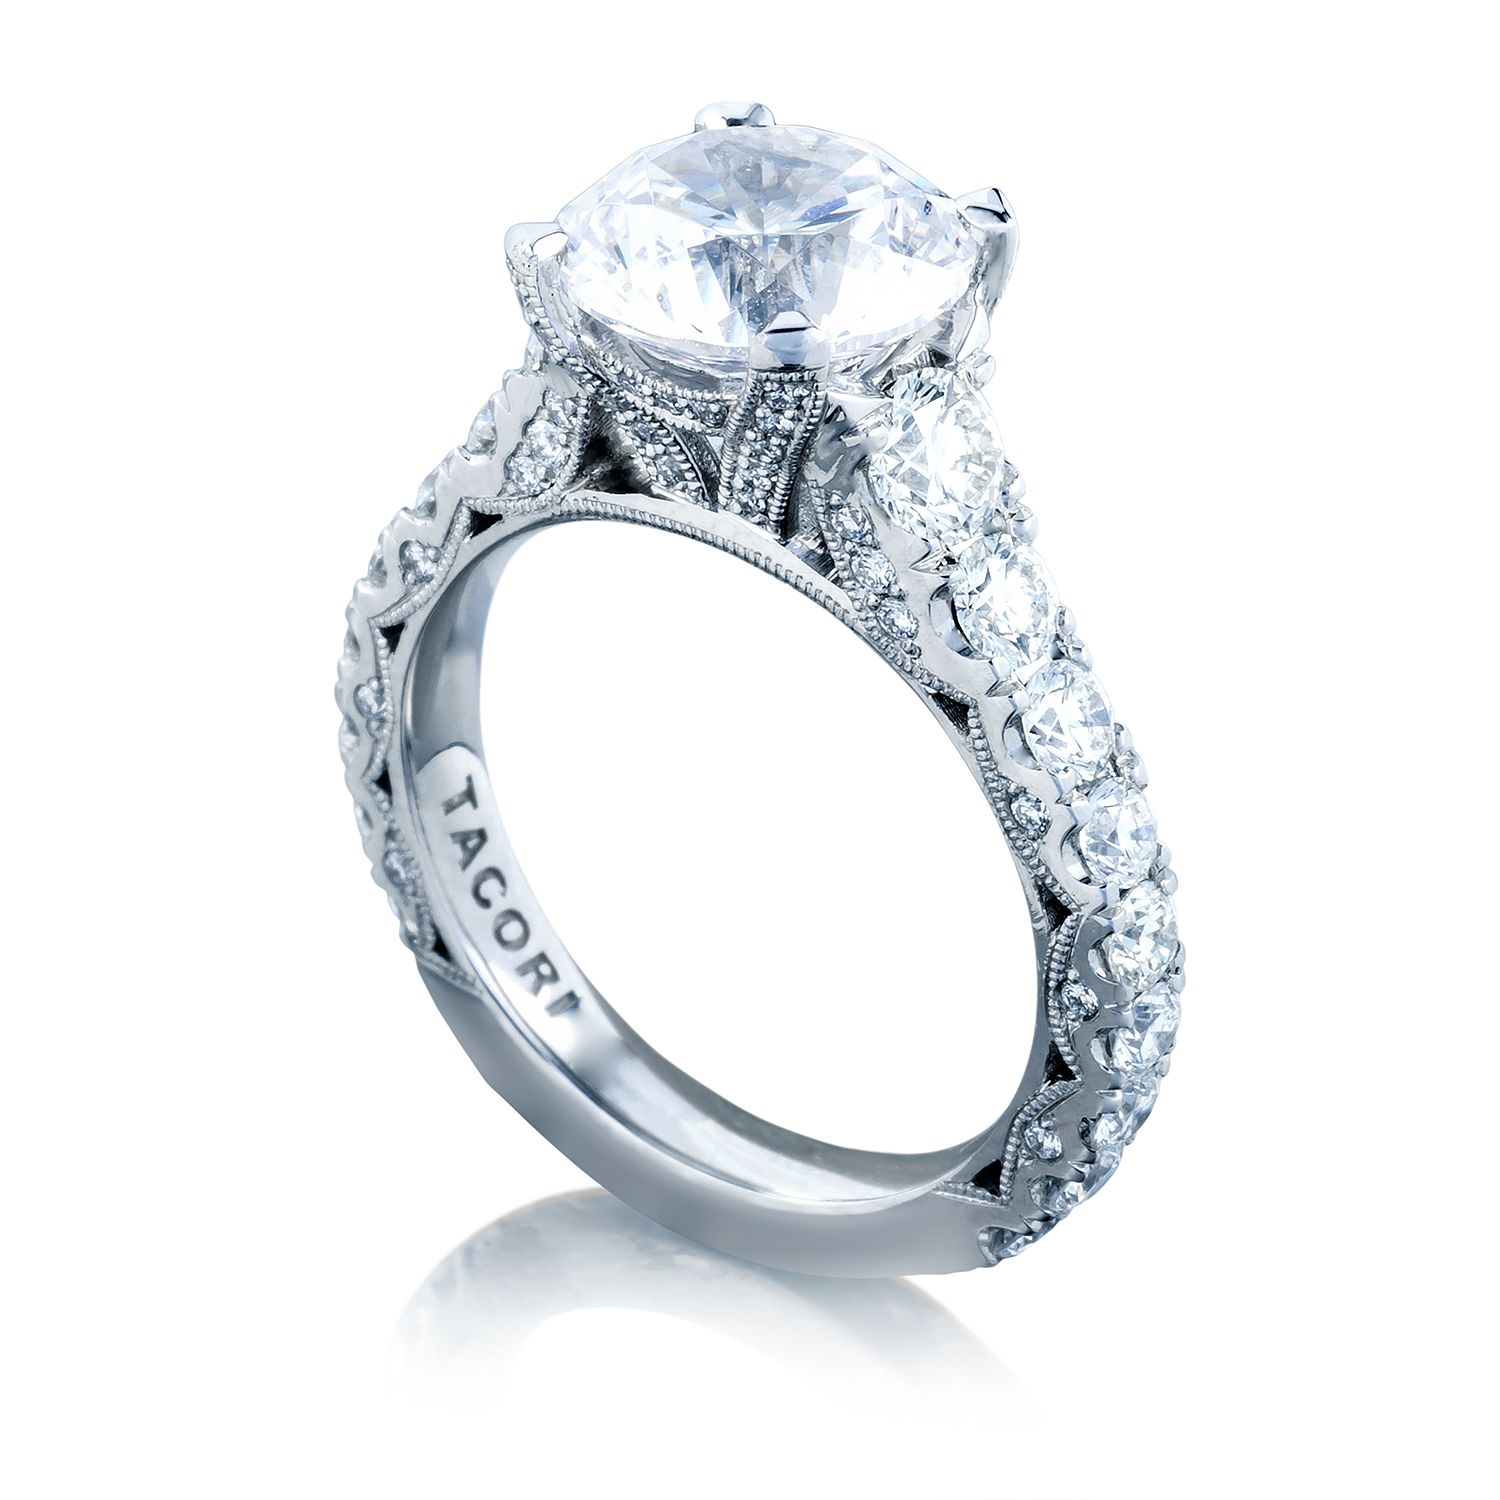 tacori wedding band Tacori RoyalT HT Round Engagement Ring Setting